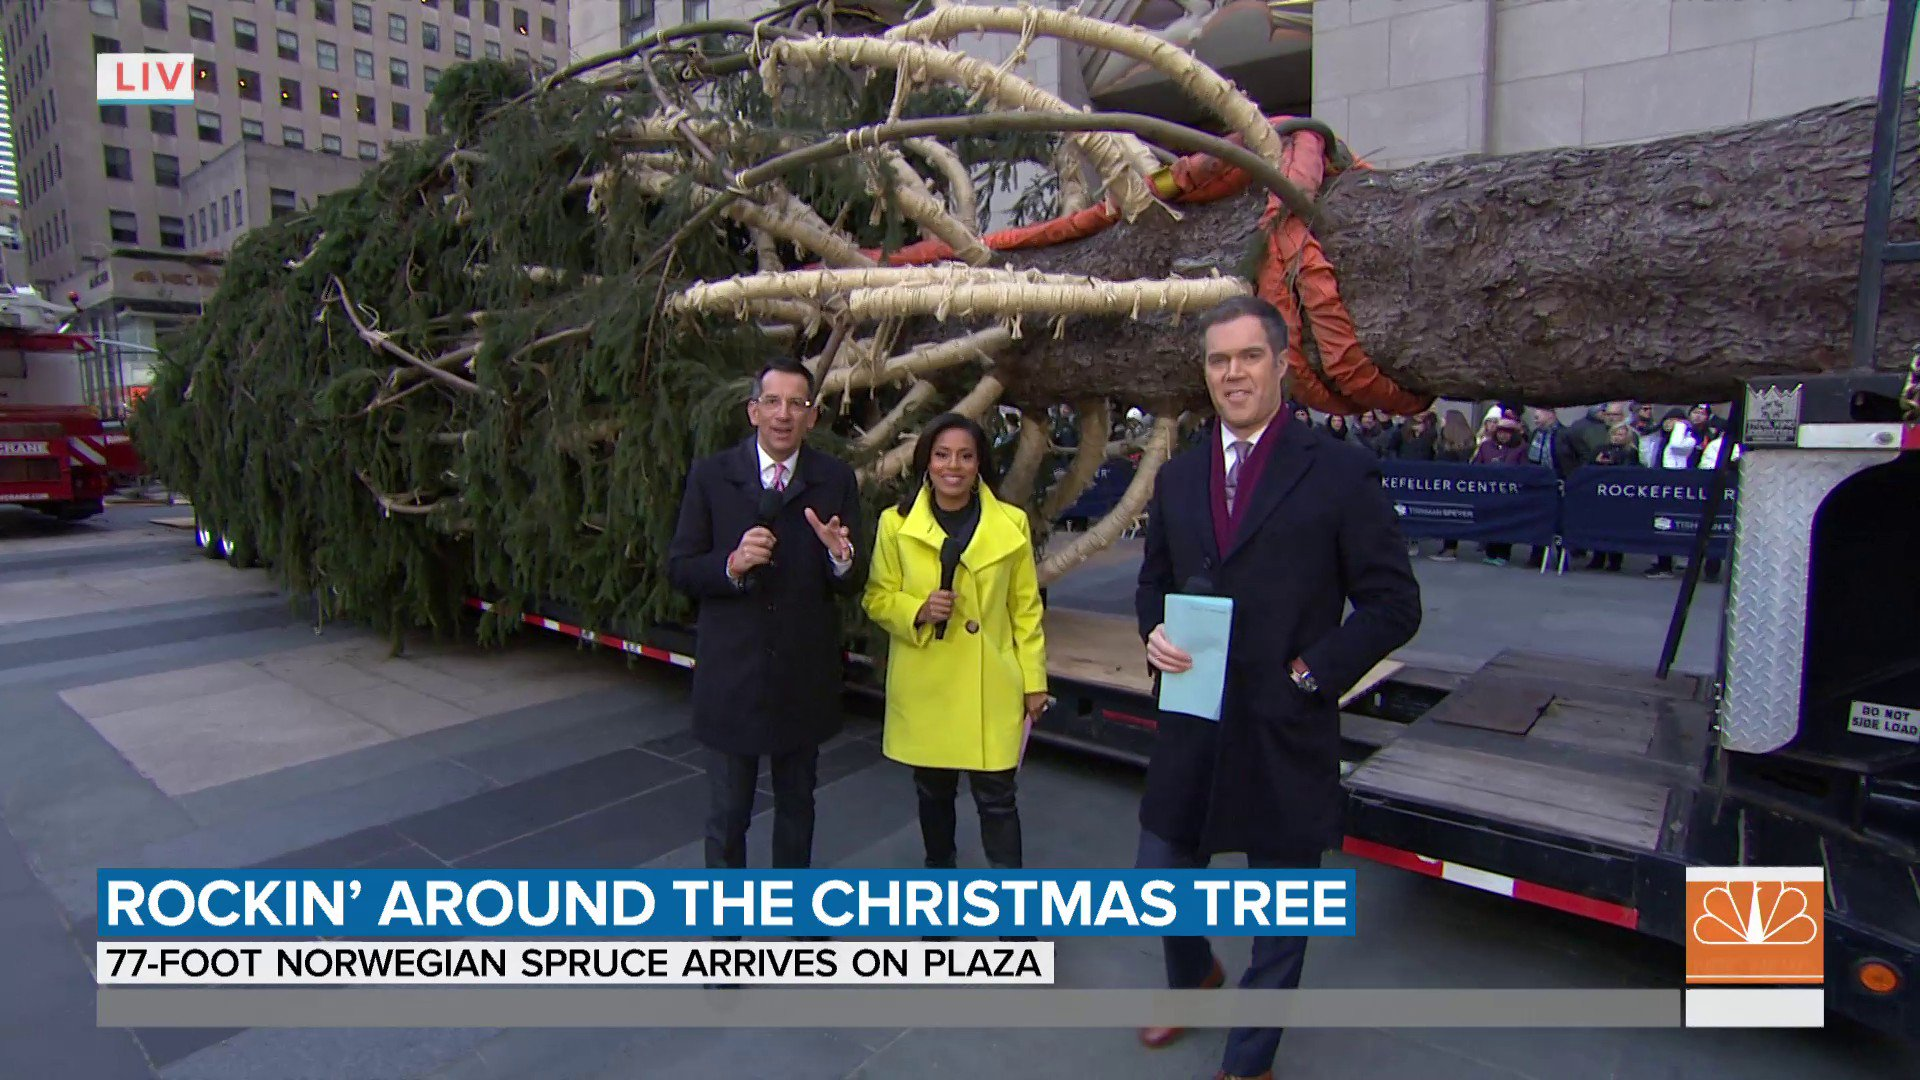 Rockefeller Center Christmas tree has arrived. The 77-foot Norway spruce was donated by Carol Schultz, who planted the tree back in 1959.